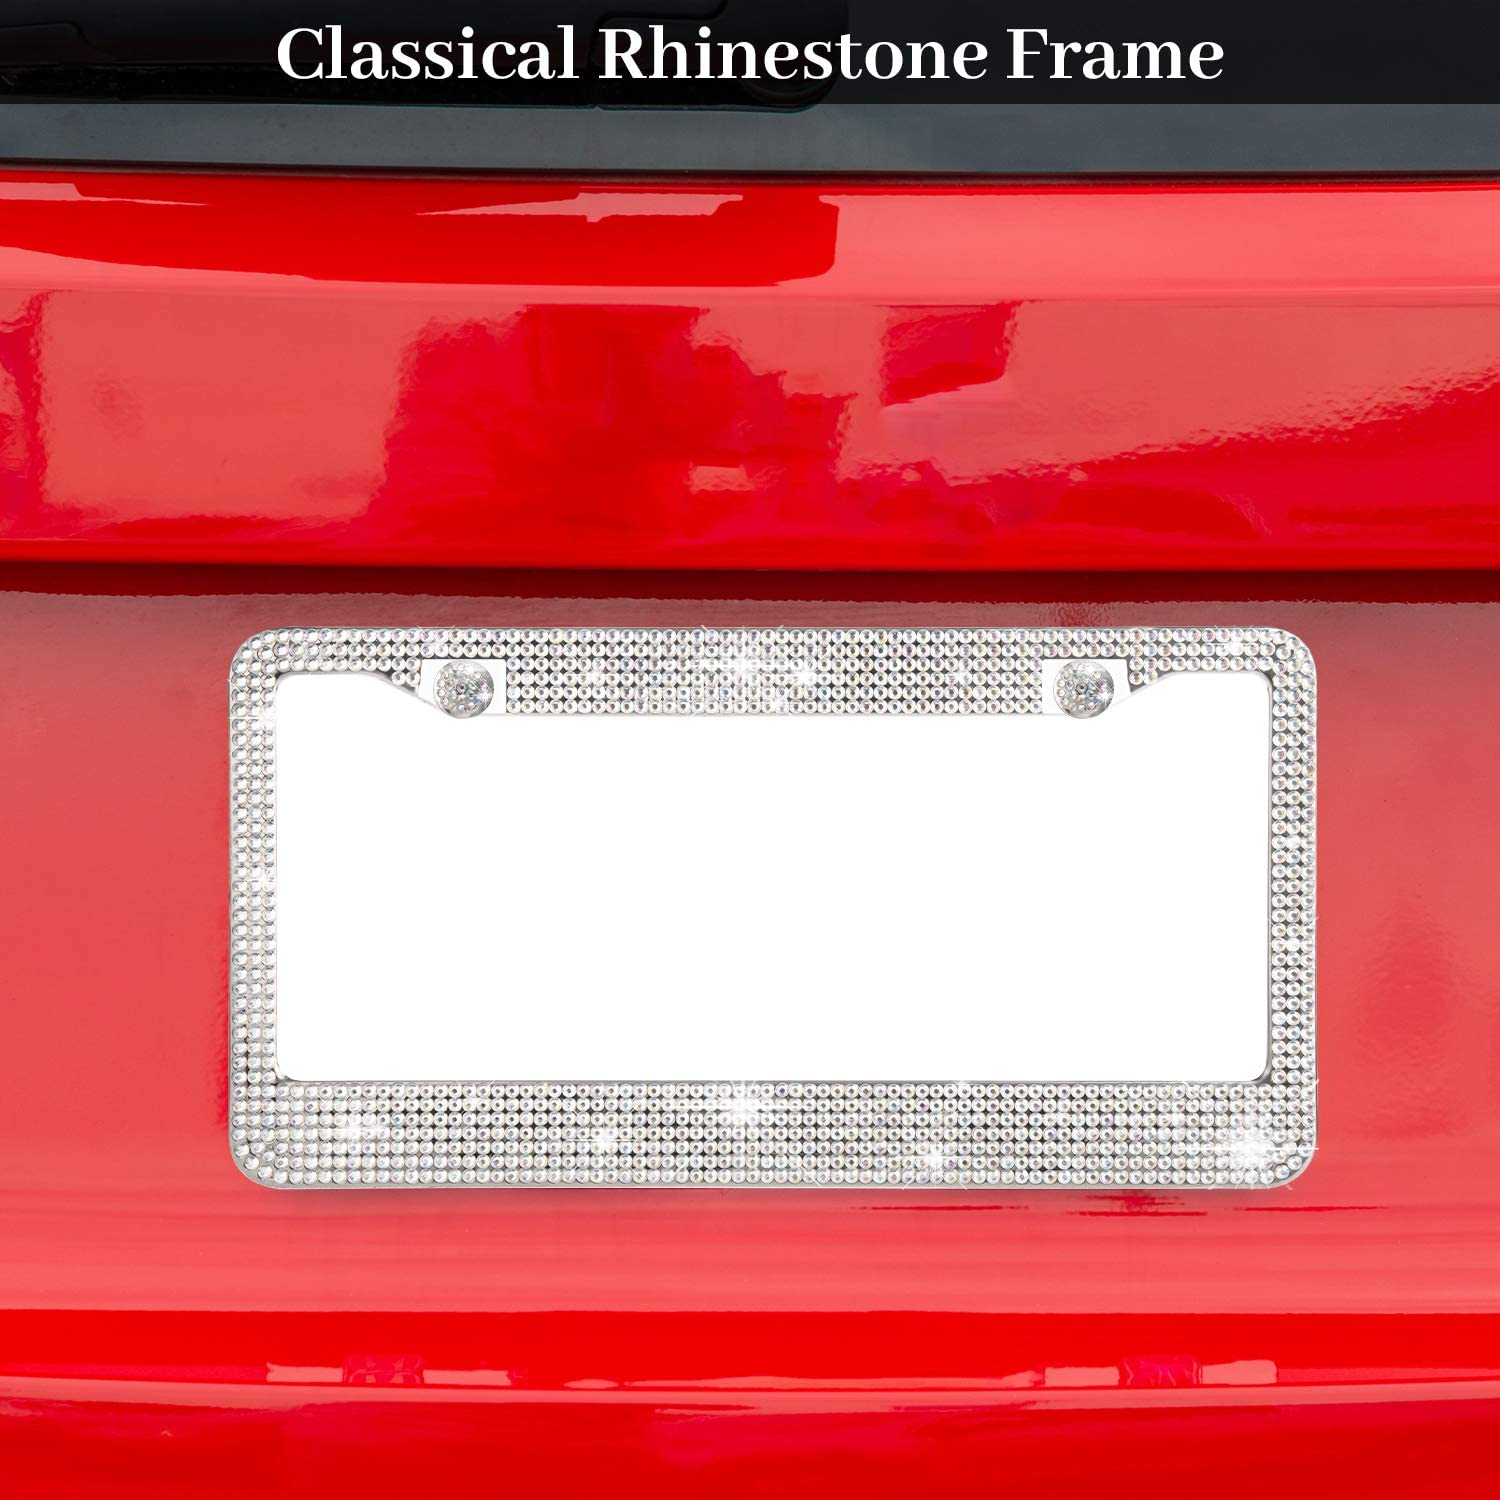 Mieziba License Plate Frame,2 Pack Crystal Shiny Rhinestone Stainless Steel Bling License Plate Frames,Over 1050 pcs 14 Facets SS16 Finest Handcrafted Luxury,Crystal